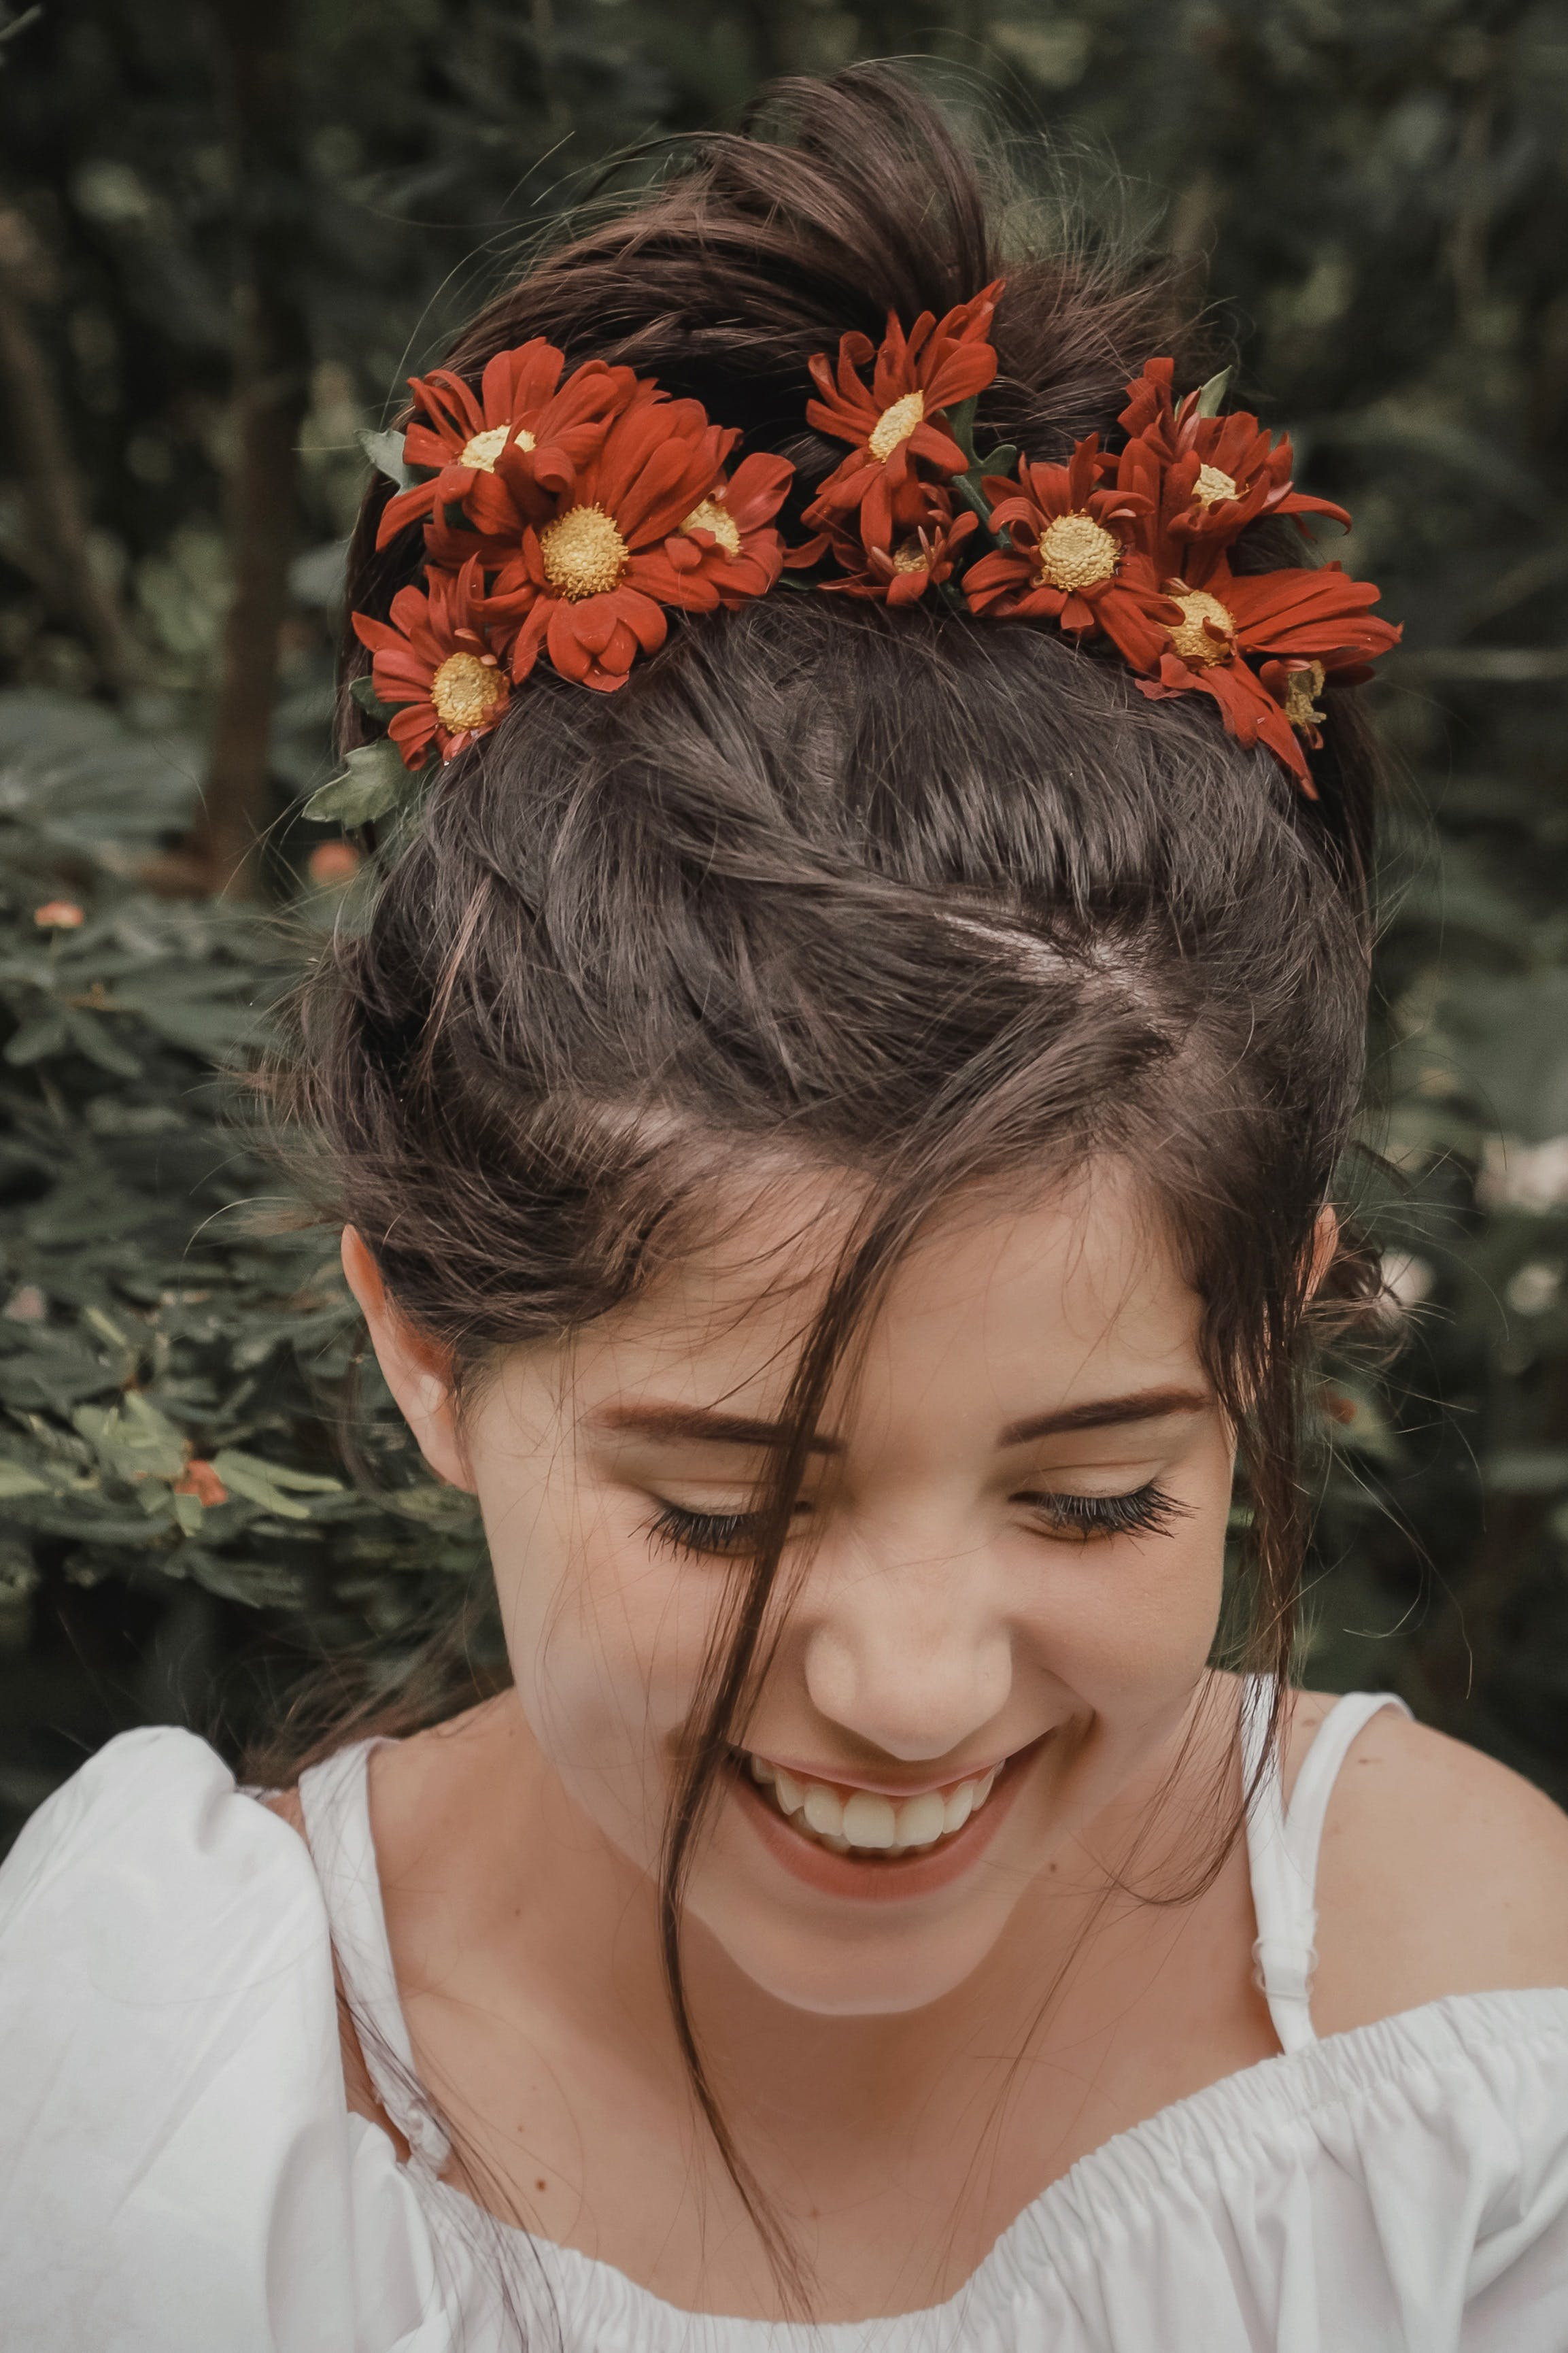 Selective Focus Photography Of Woman With Flowers On Her Head